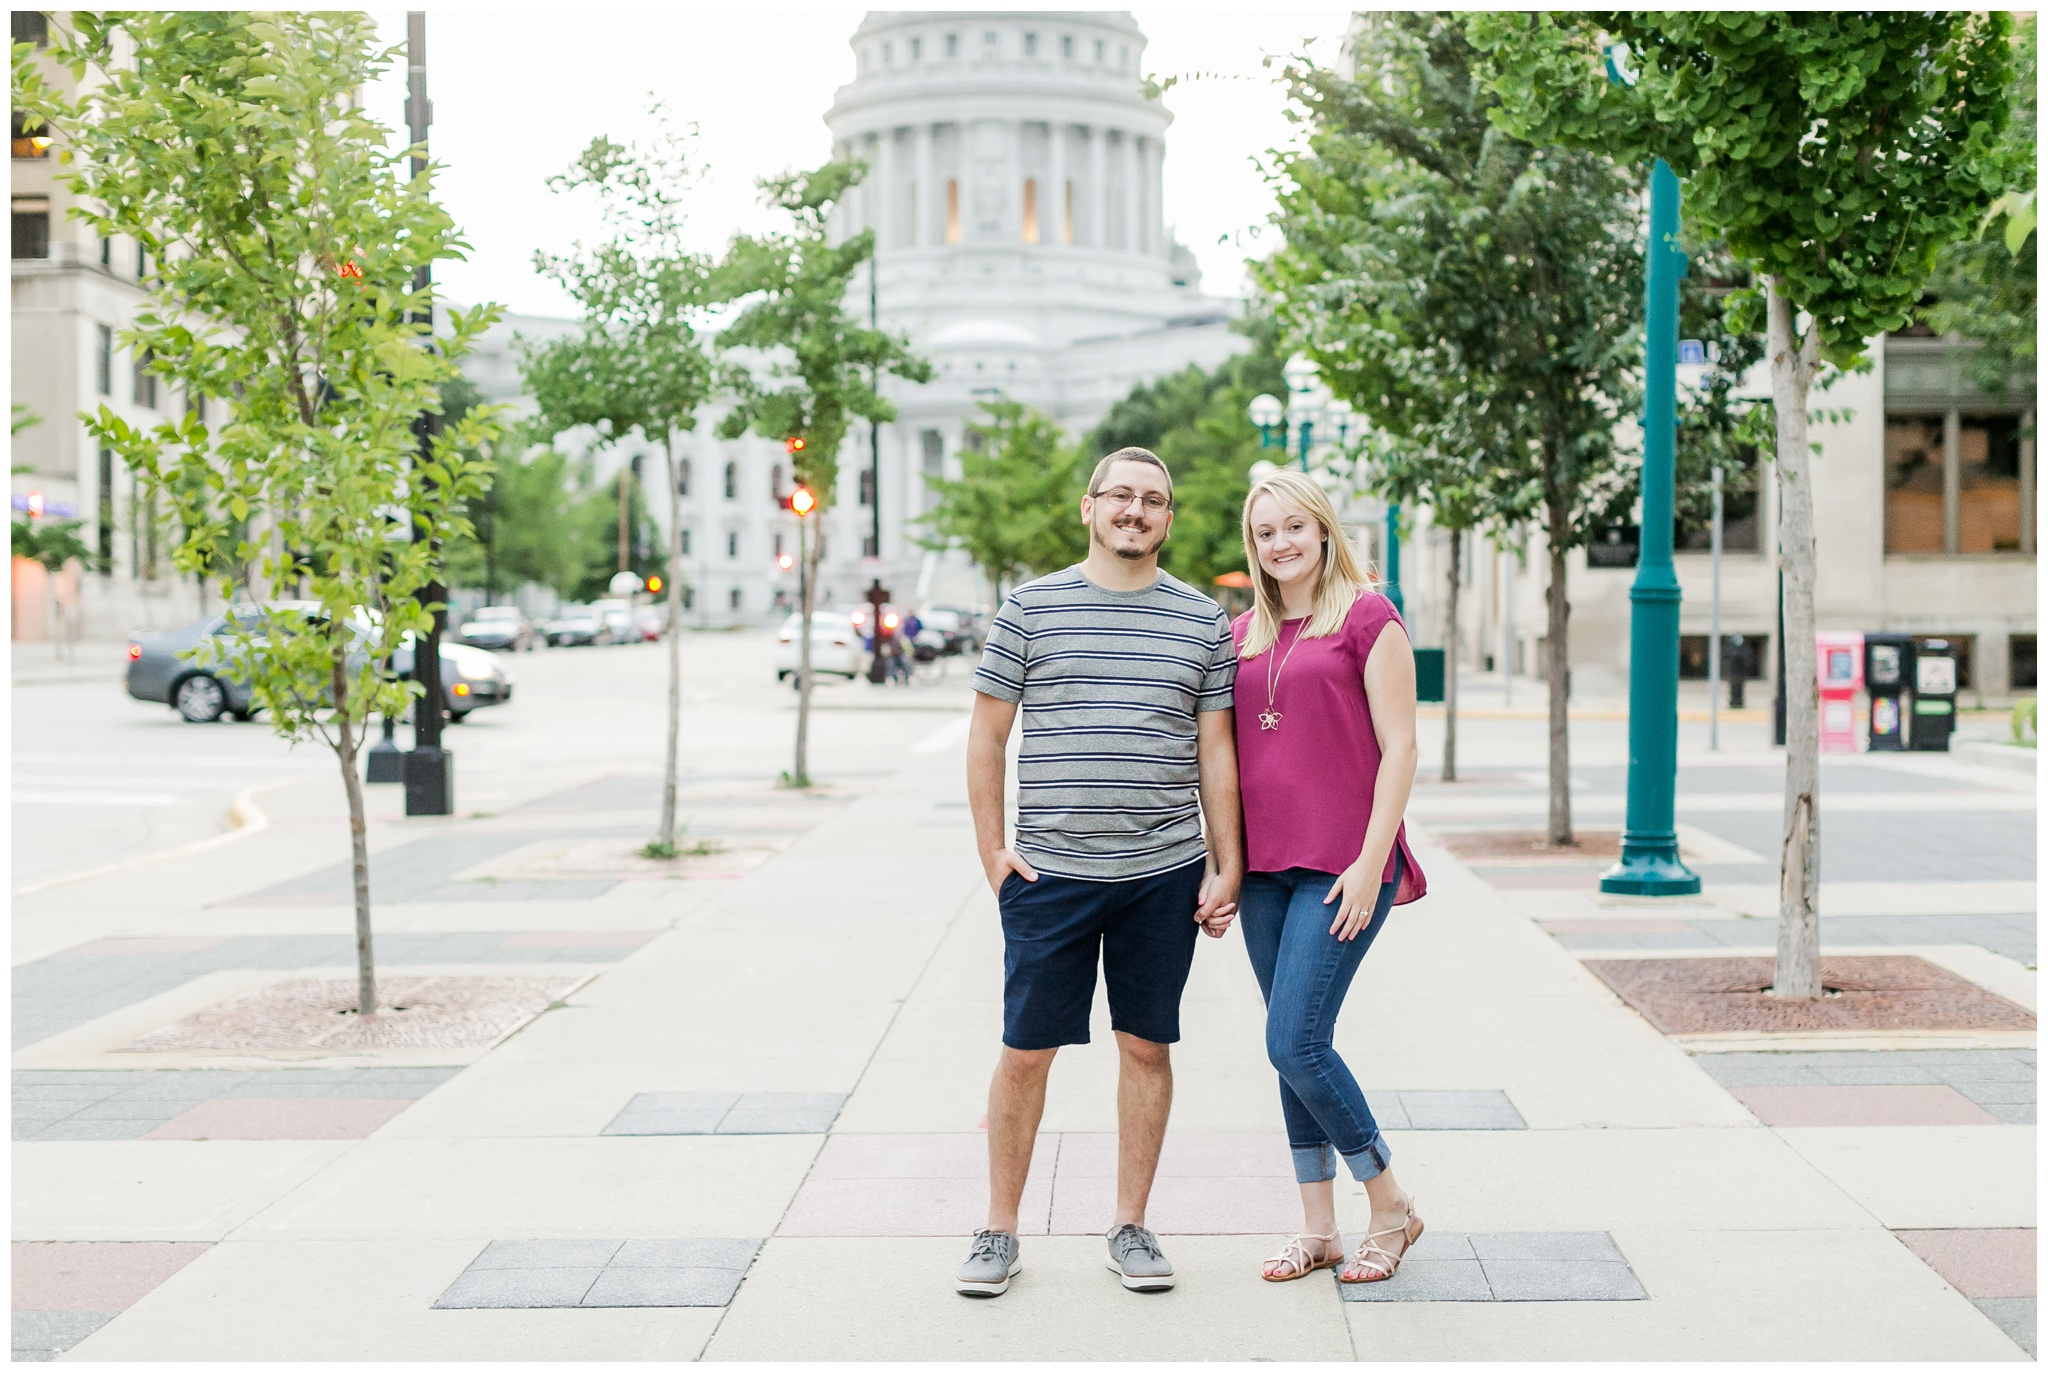 Downtown_madison_wisconsin_engagement_session_4225.jpg